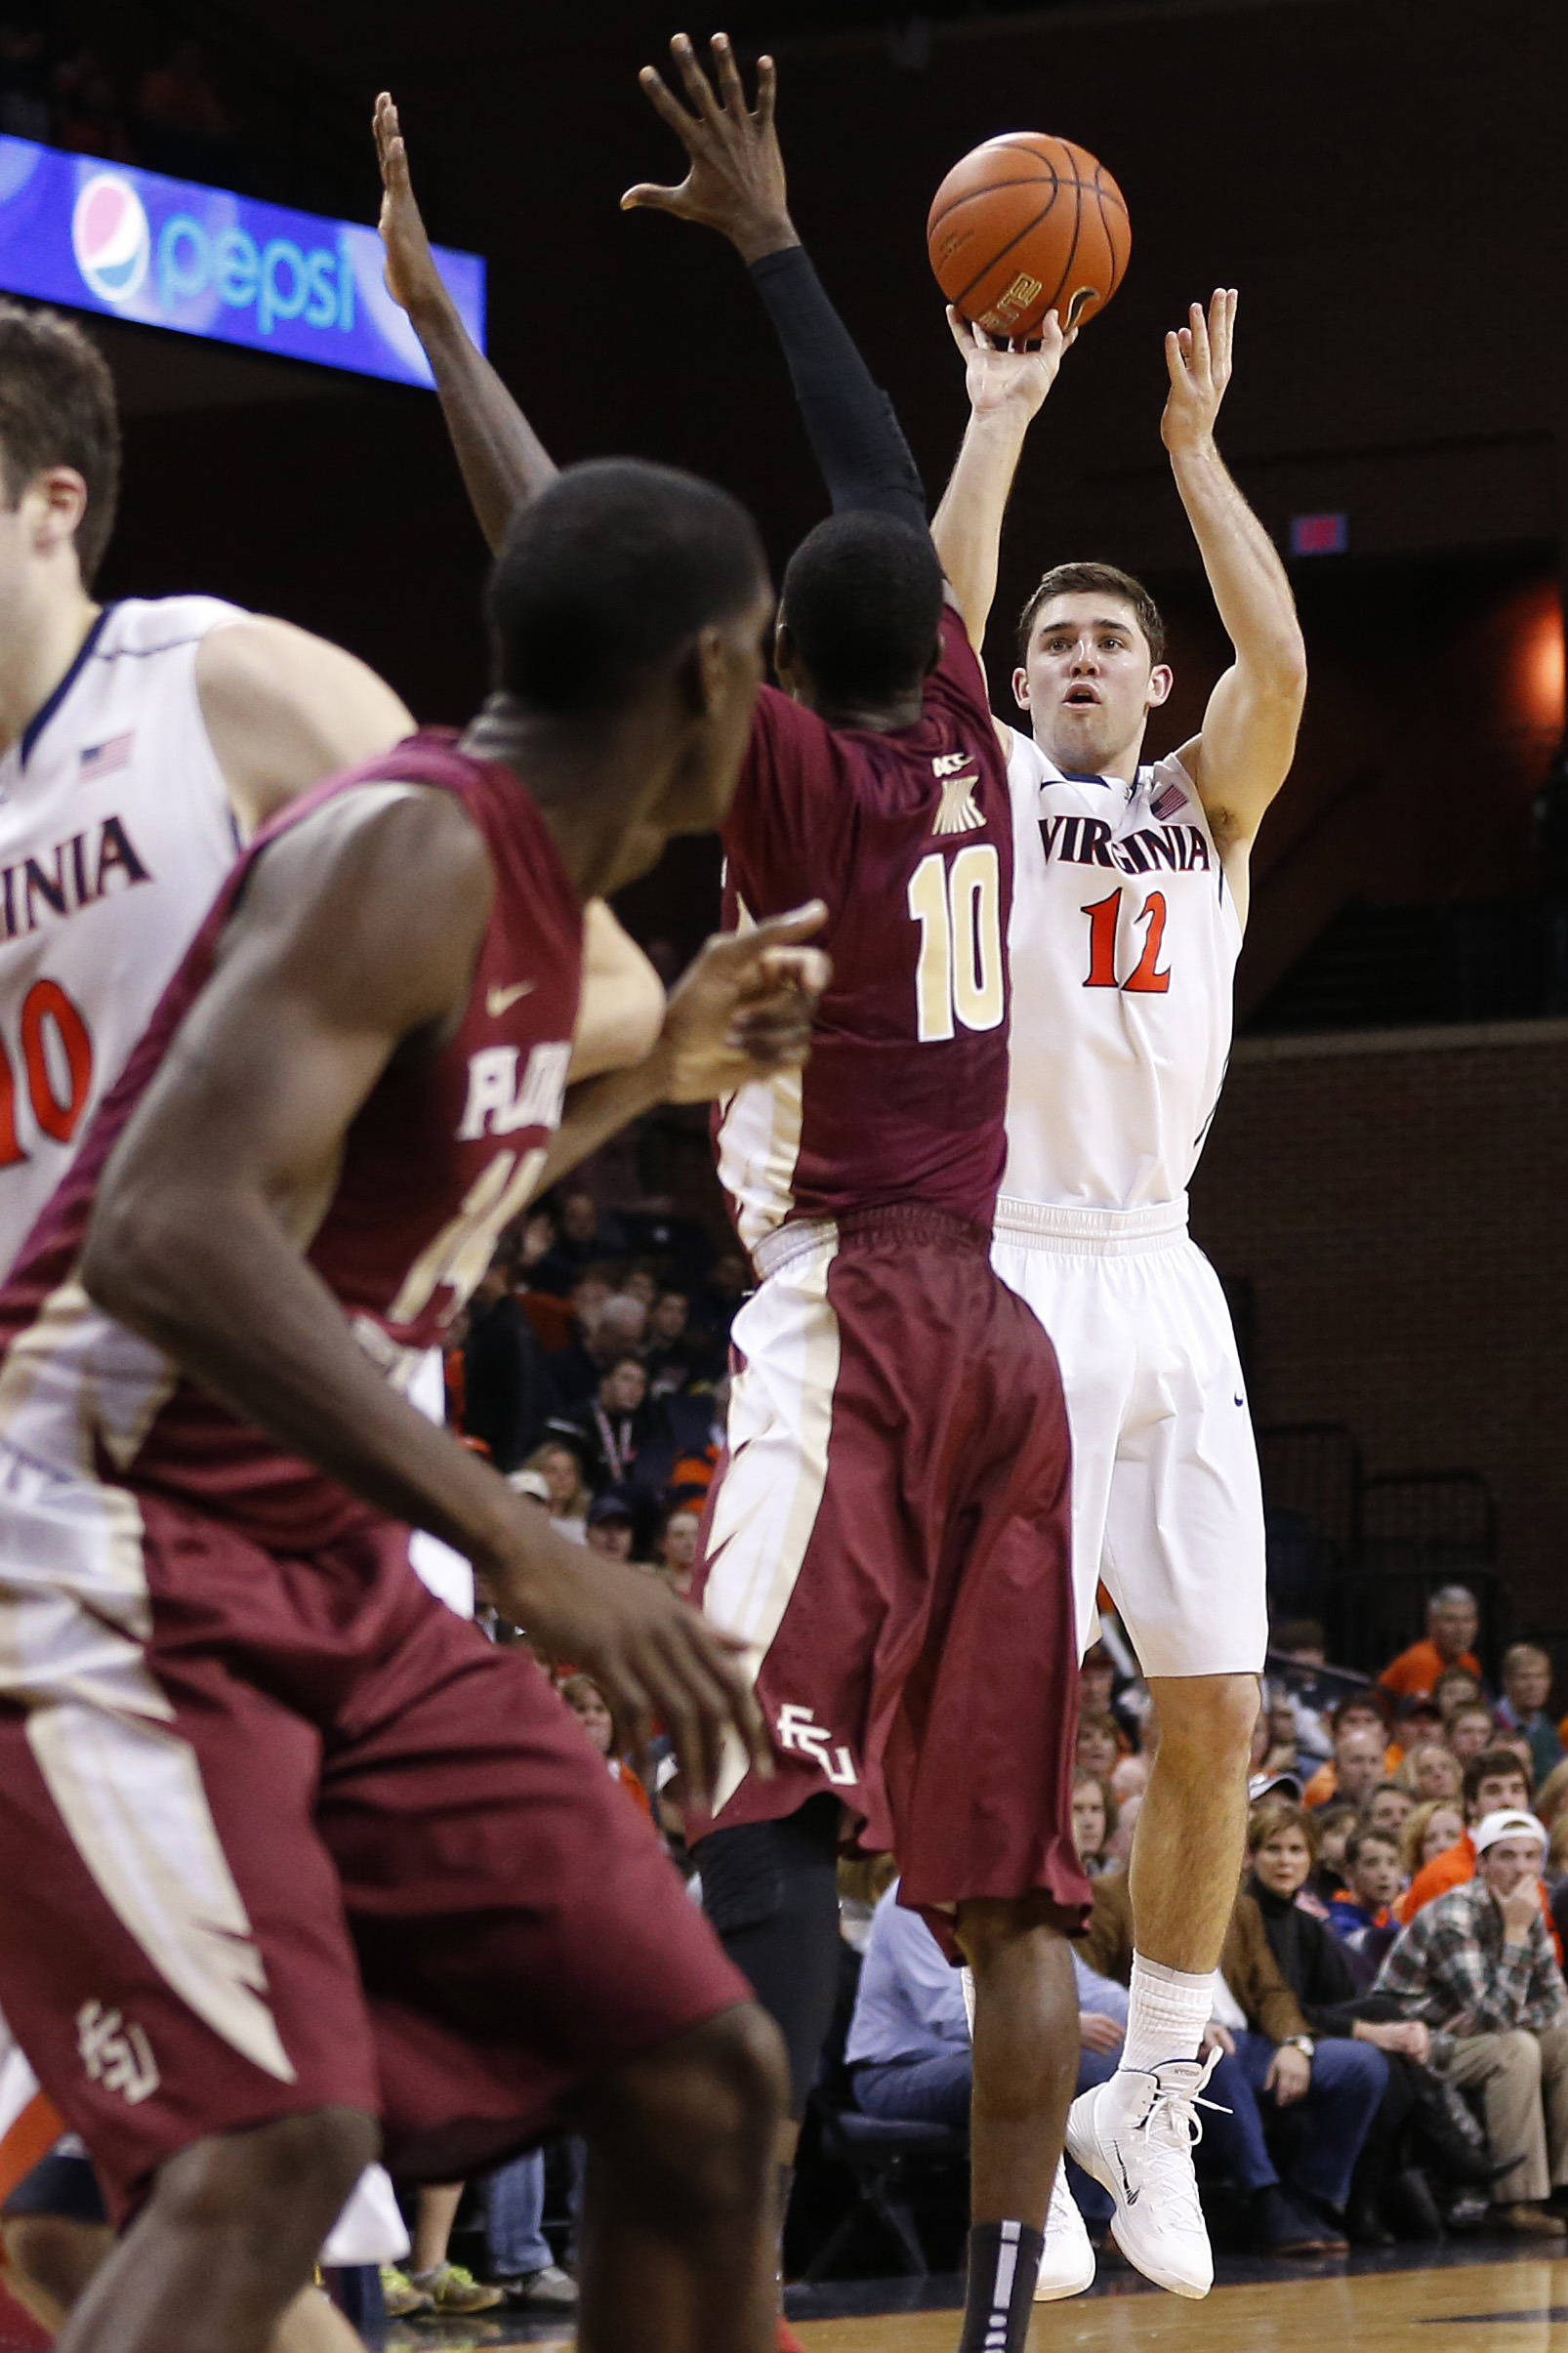 Jan 18, 2014; Charlottesville, VA, USA; Virginia Cavaliers guard Joe Harris (12) shoots the ball over Florida State Seminoles forward Okaro White (10) in the second half at John Paul Jones Arena. The Cavaliers won 78-66. Mandatory Credit: Geoff Burke-USA TODAY Sports